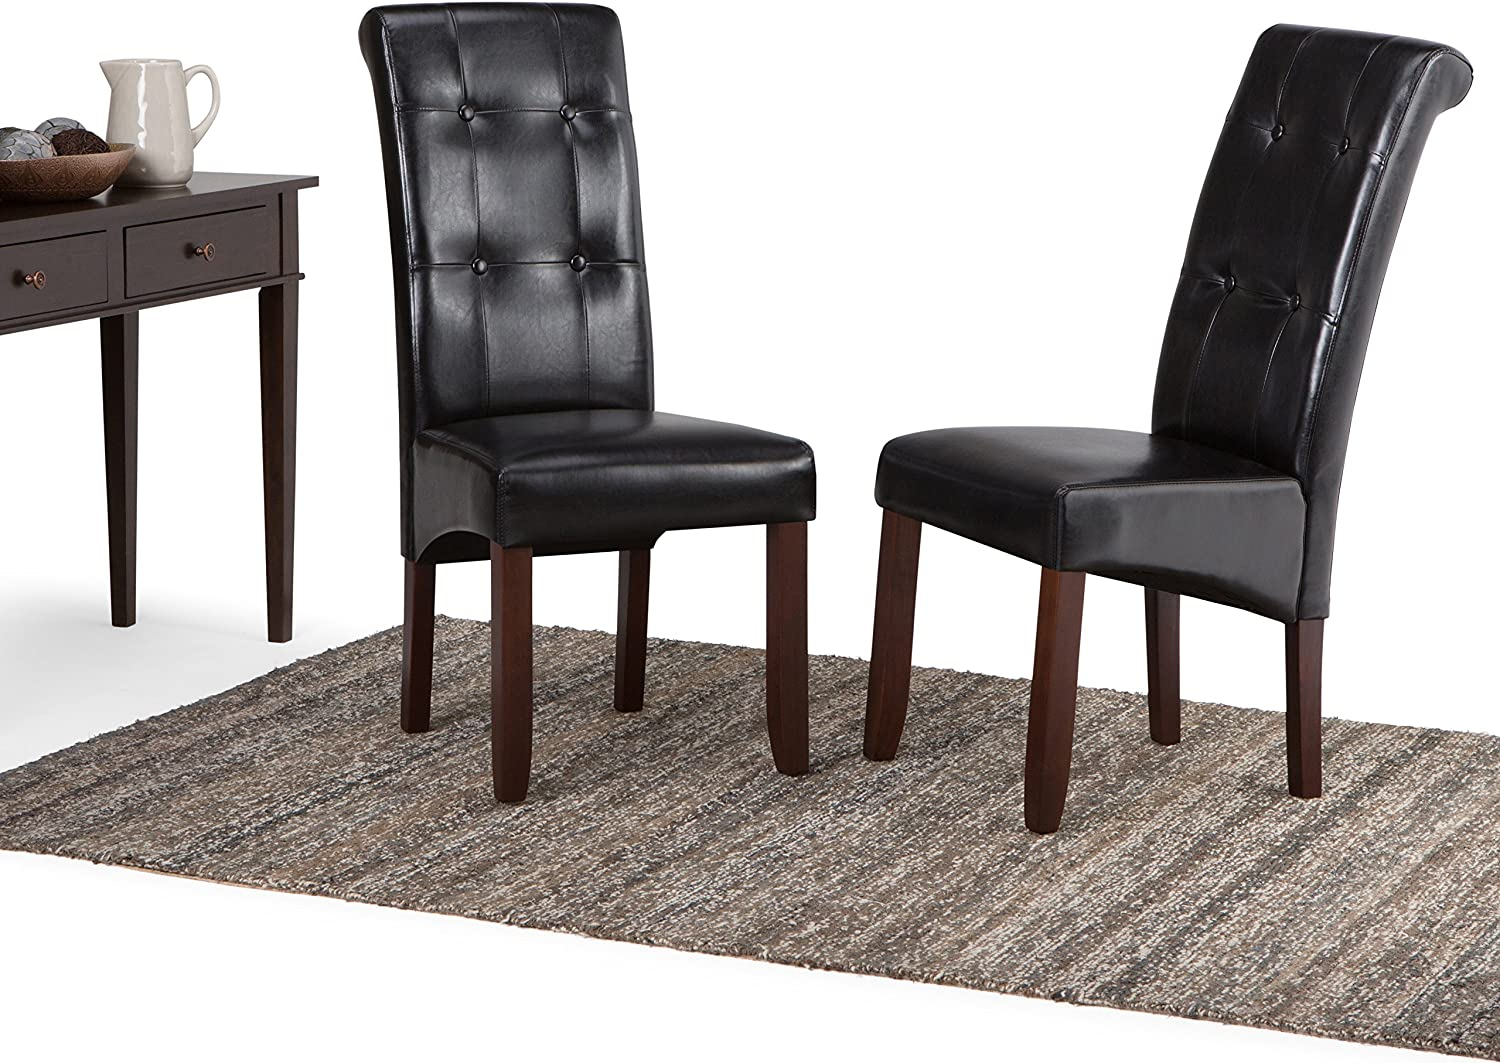 Set of 2 Midnight Black Simpli Home Cosmopolitan Deluxe Tufted Parson Dining Chair